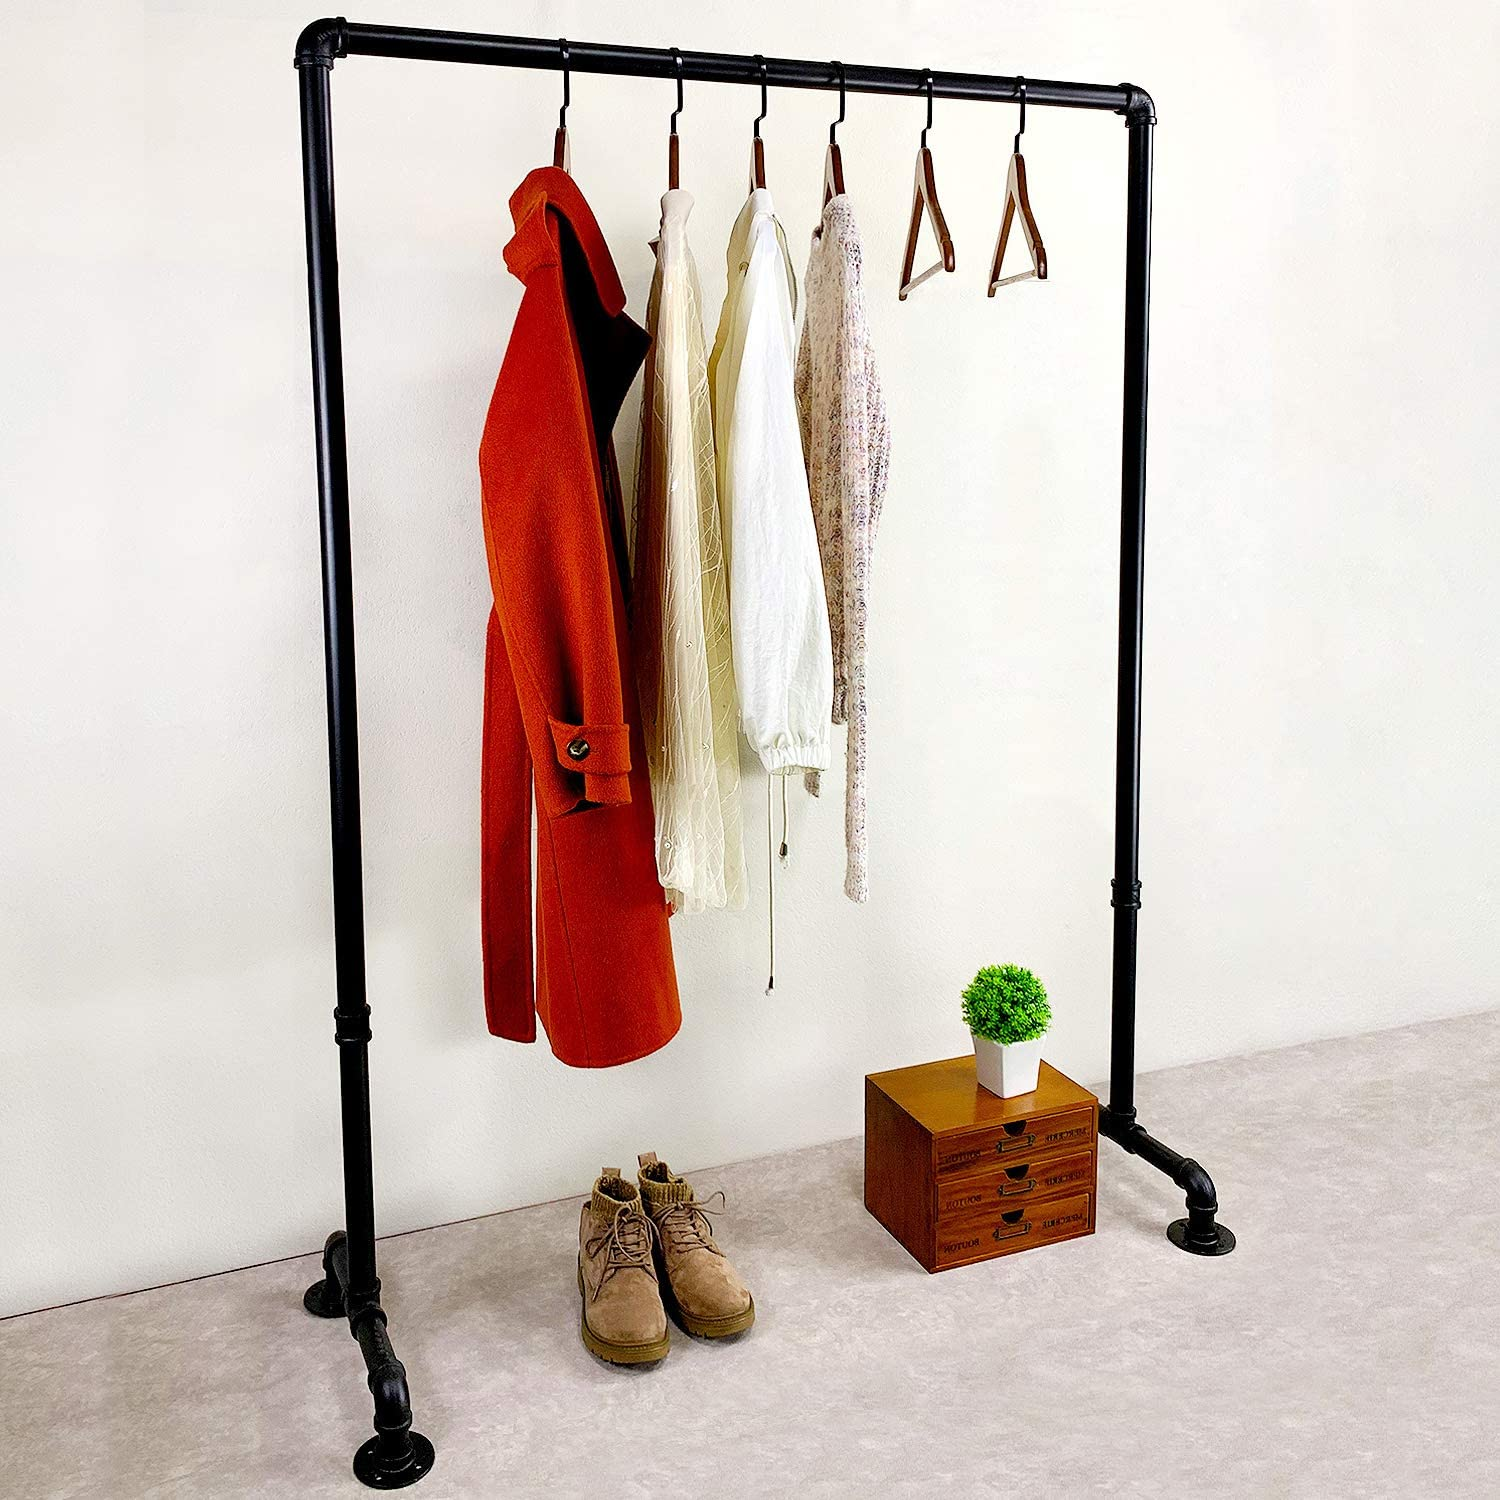 MBQQ Long-awaited Industrial Pipe Clothing Rack 43.3in Overseas parallel import regular item Vintage Commerc Length